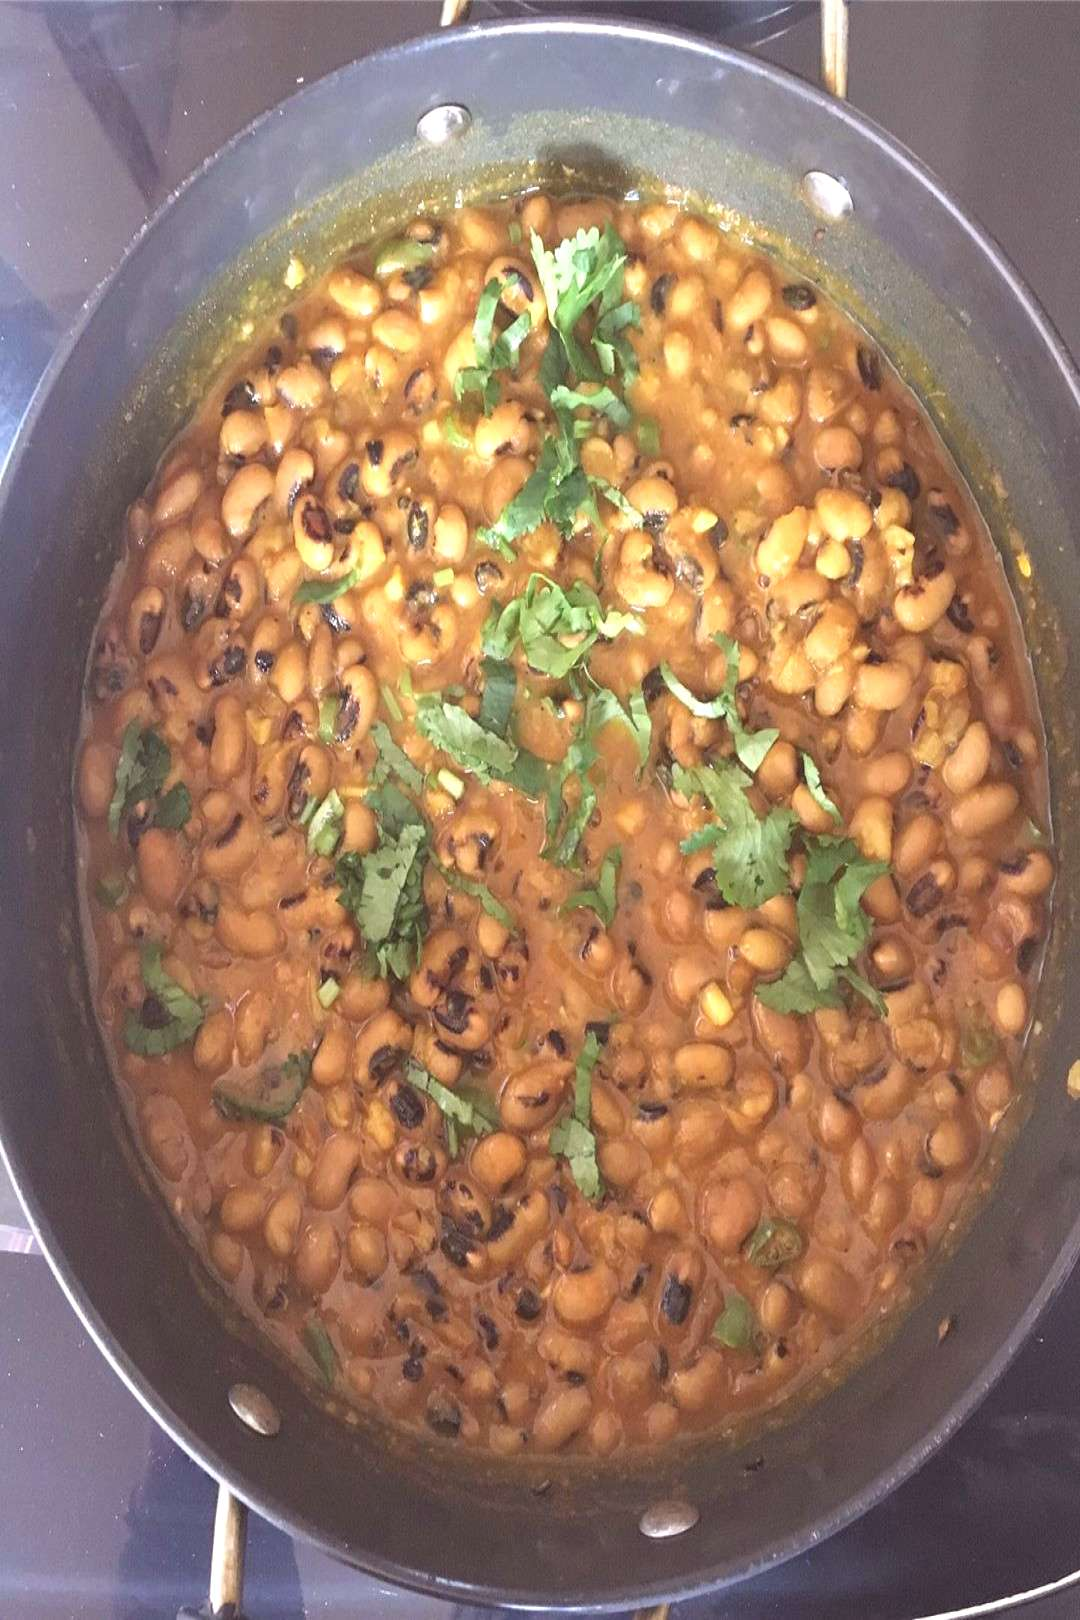 Black eyed beans with garlic and green chilli. One of my favourit